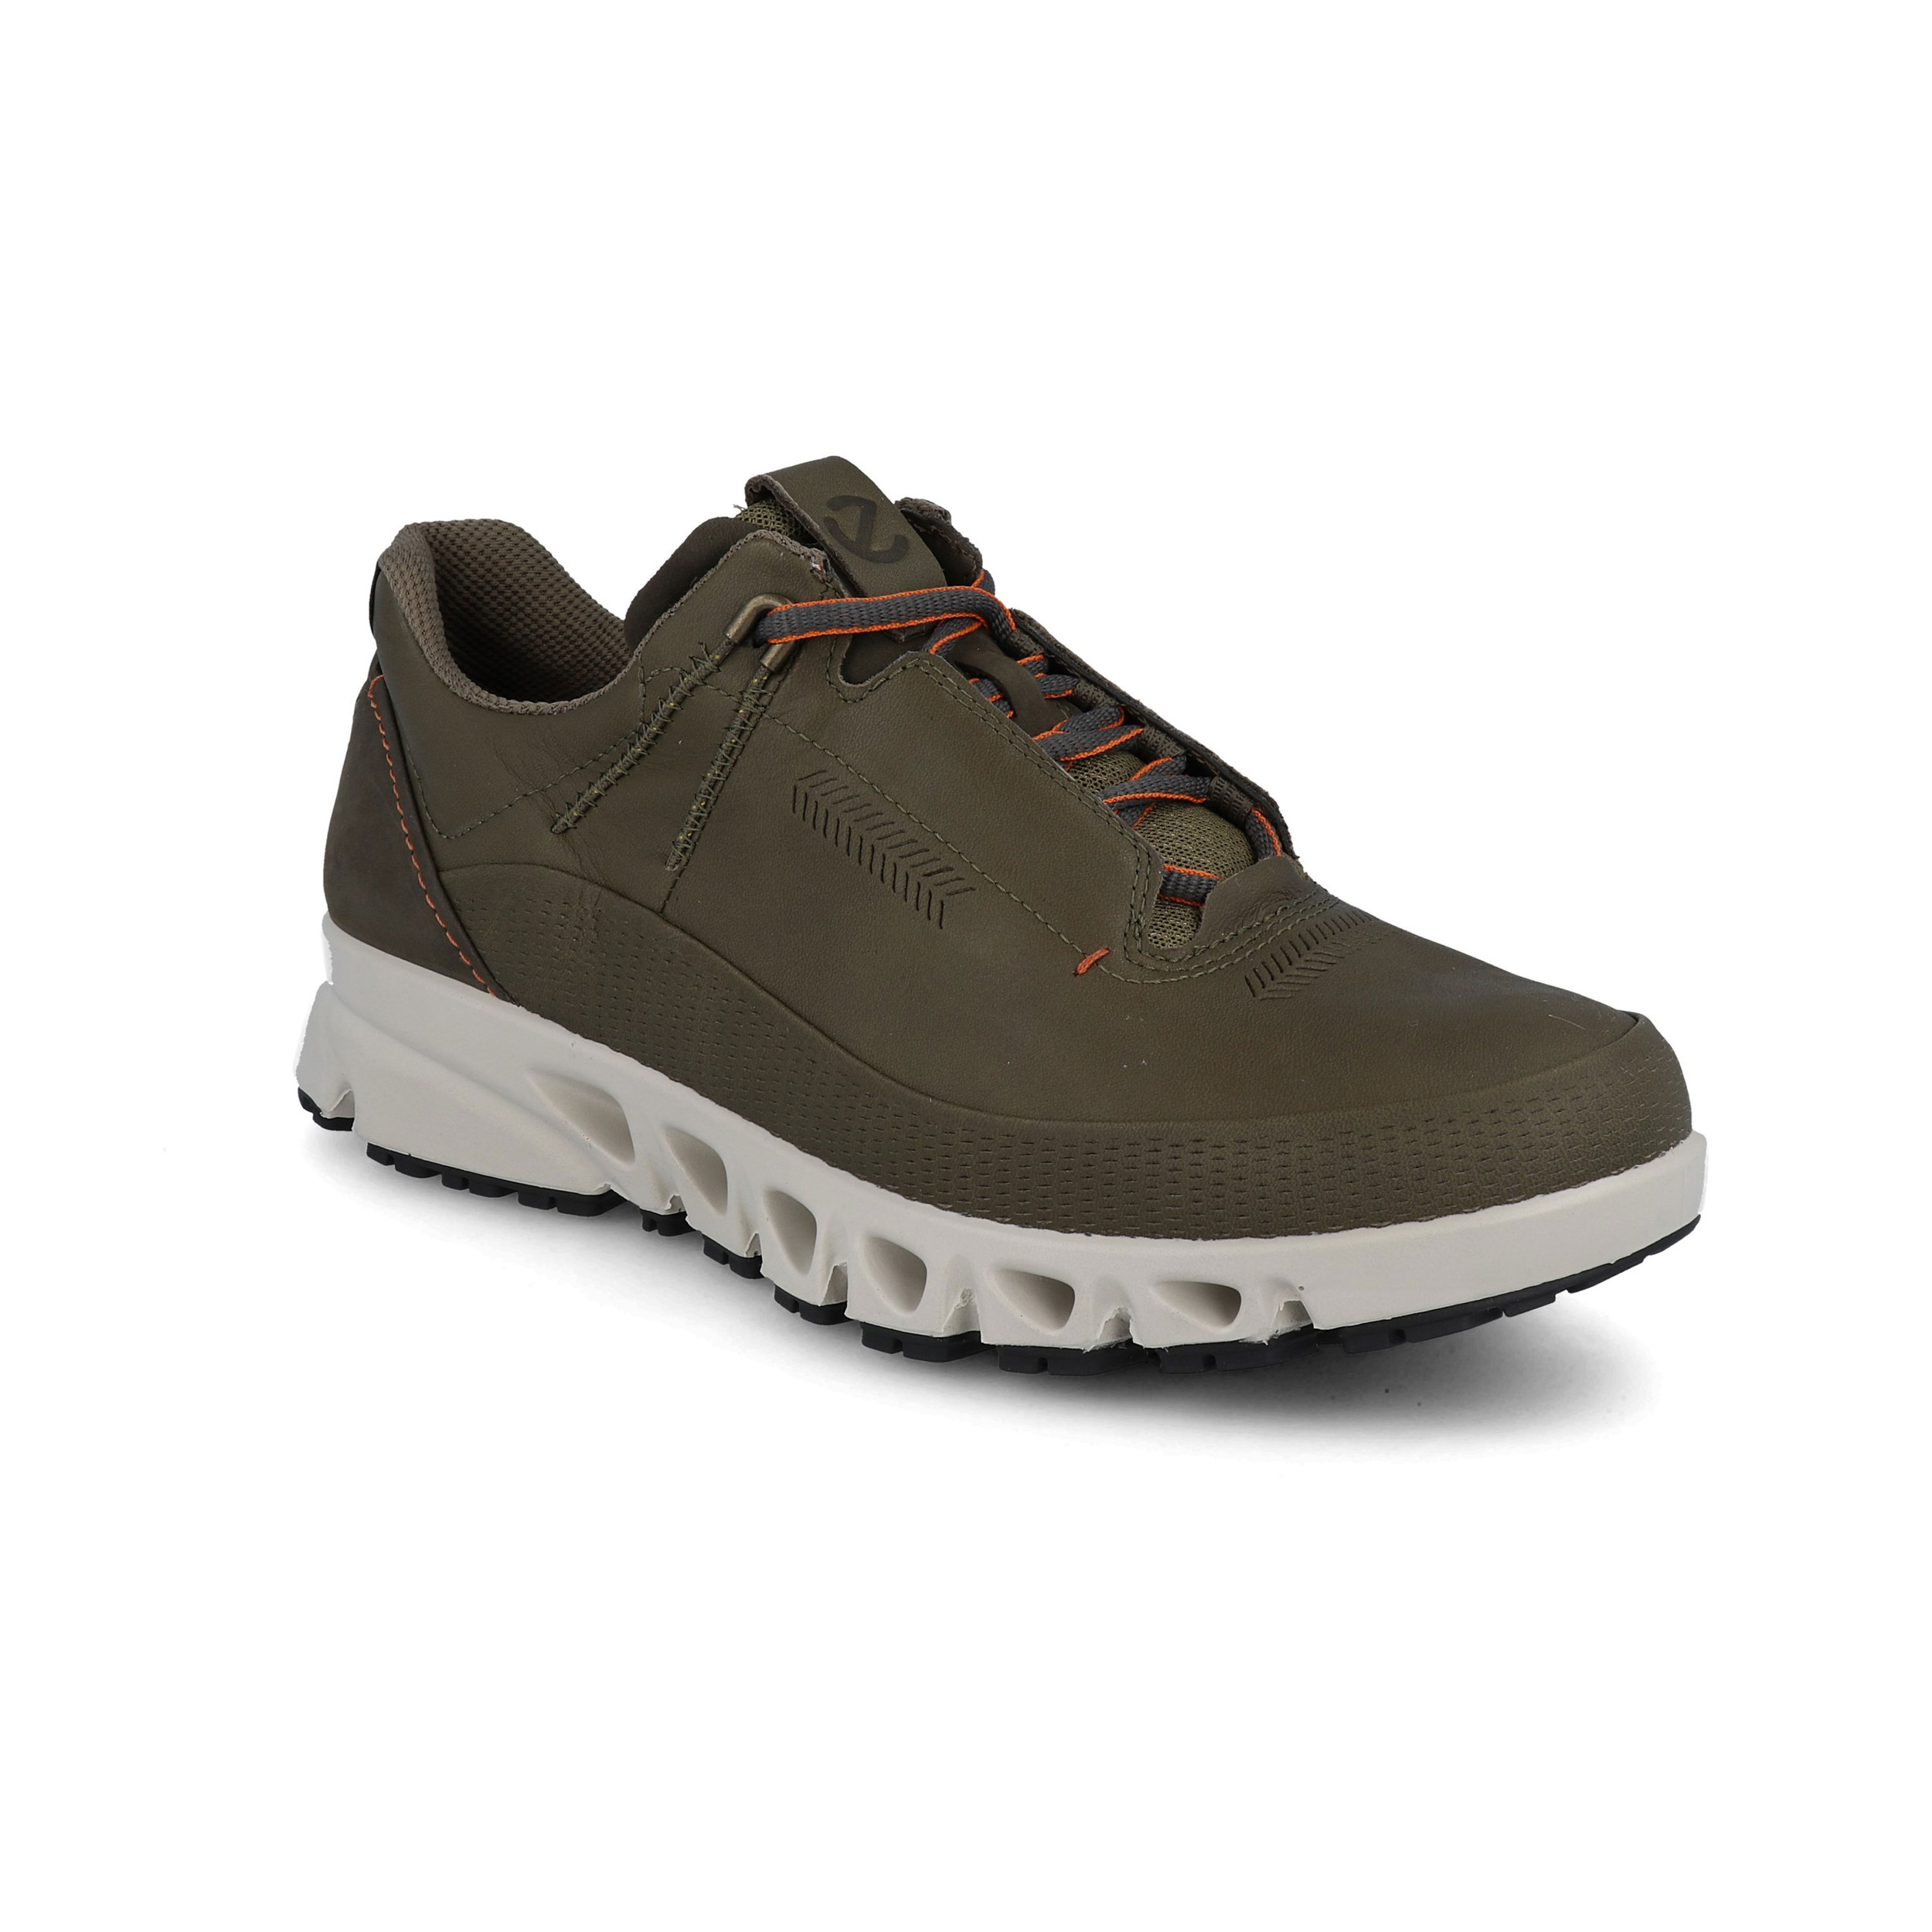 Ecco Mens Omni Vent Walking Shoes Green Sports Outdoors Waterproof Breathable